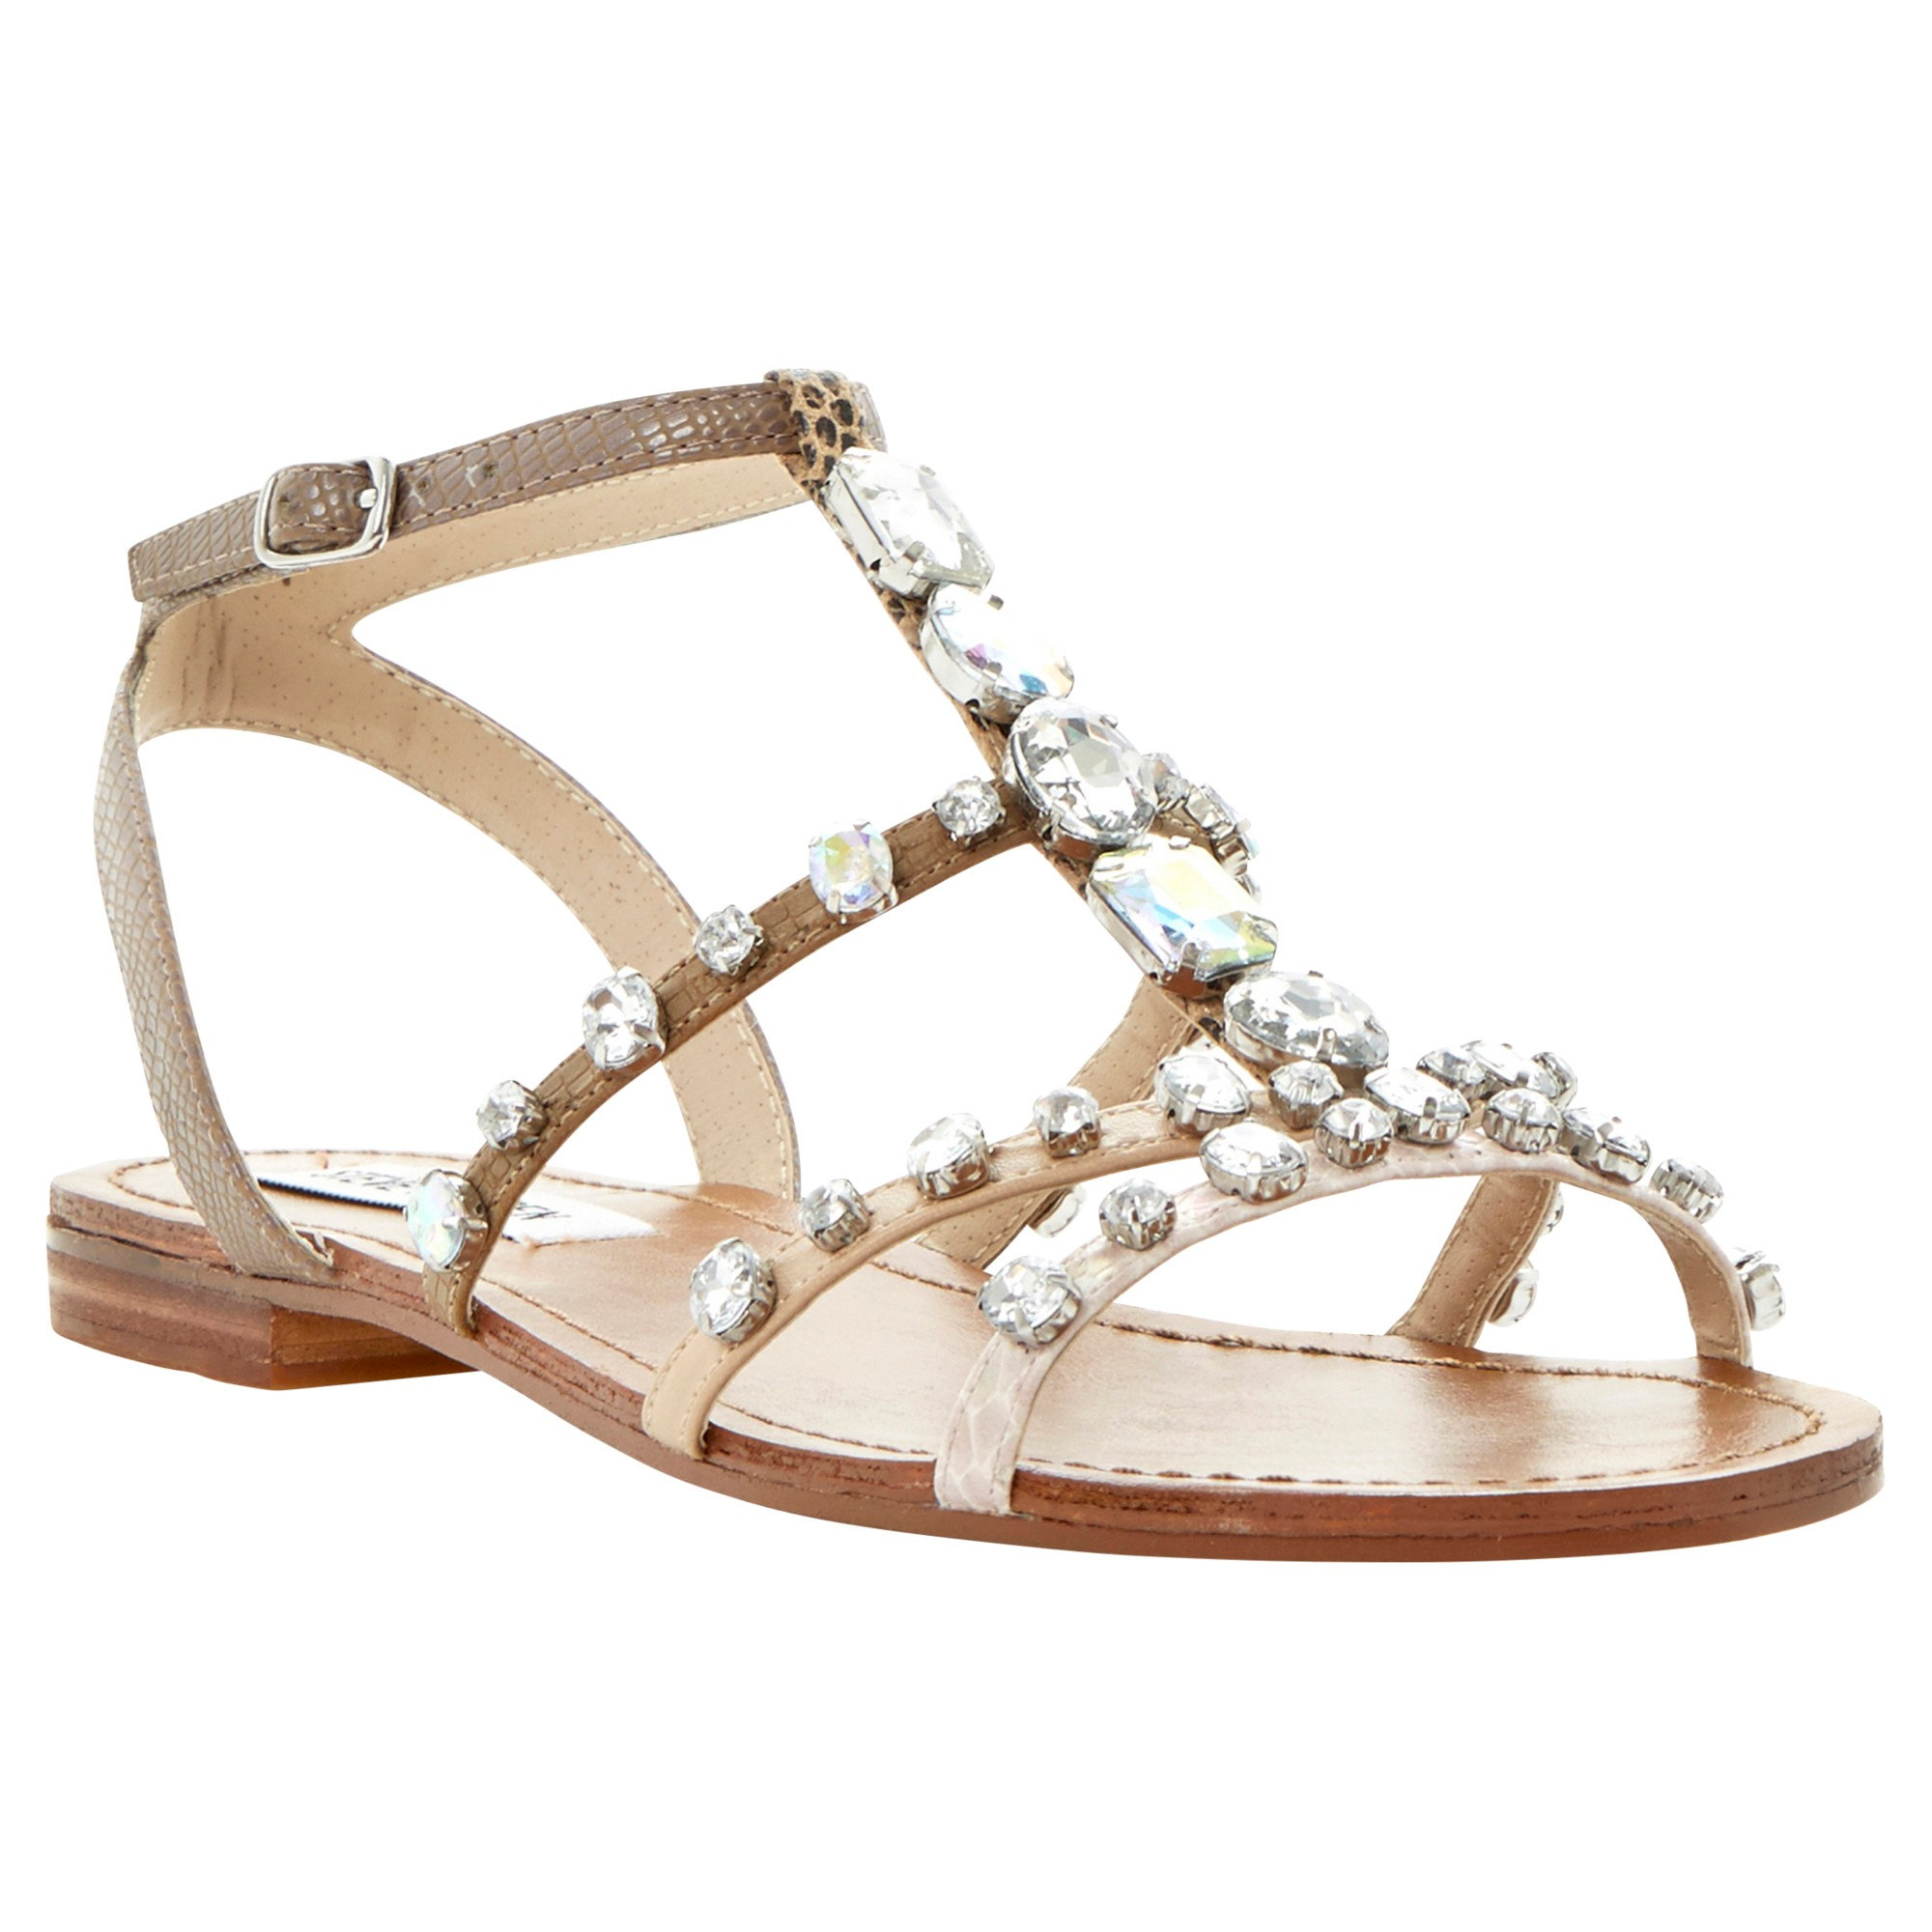 57aae931d1eb Steve Madden B Jewelled Diamante Flat Sandals in Metallic - Lyst